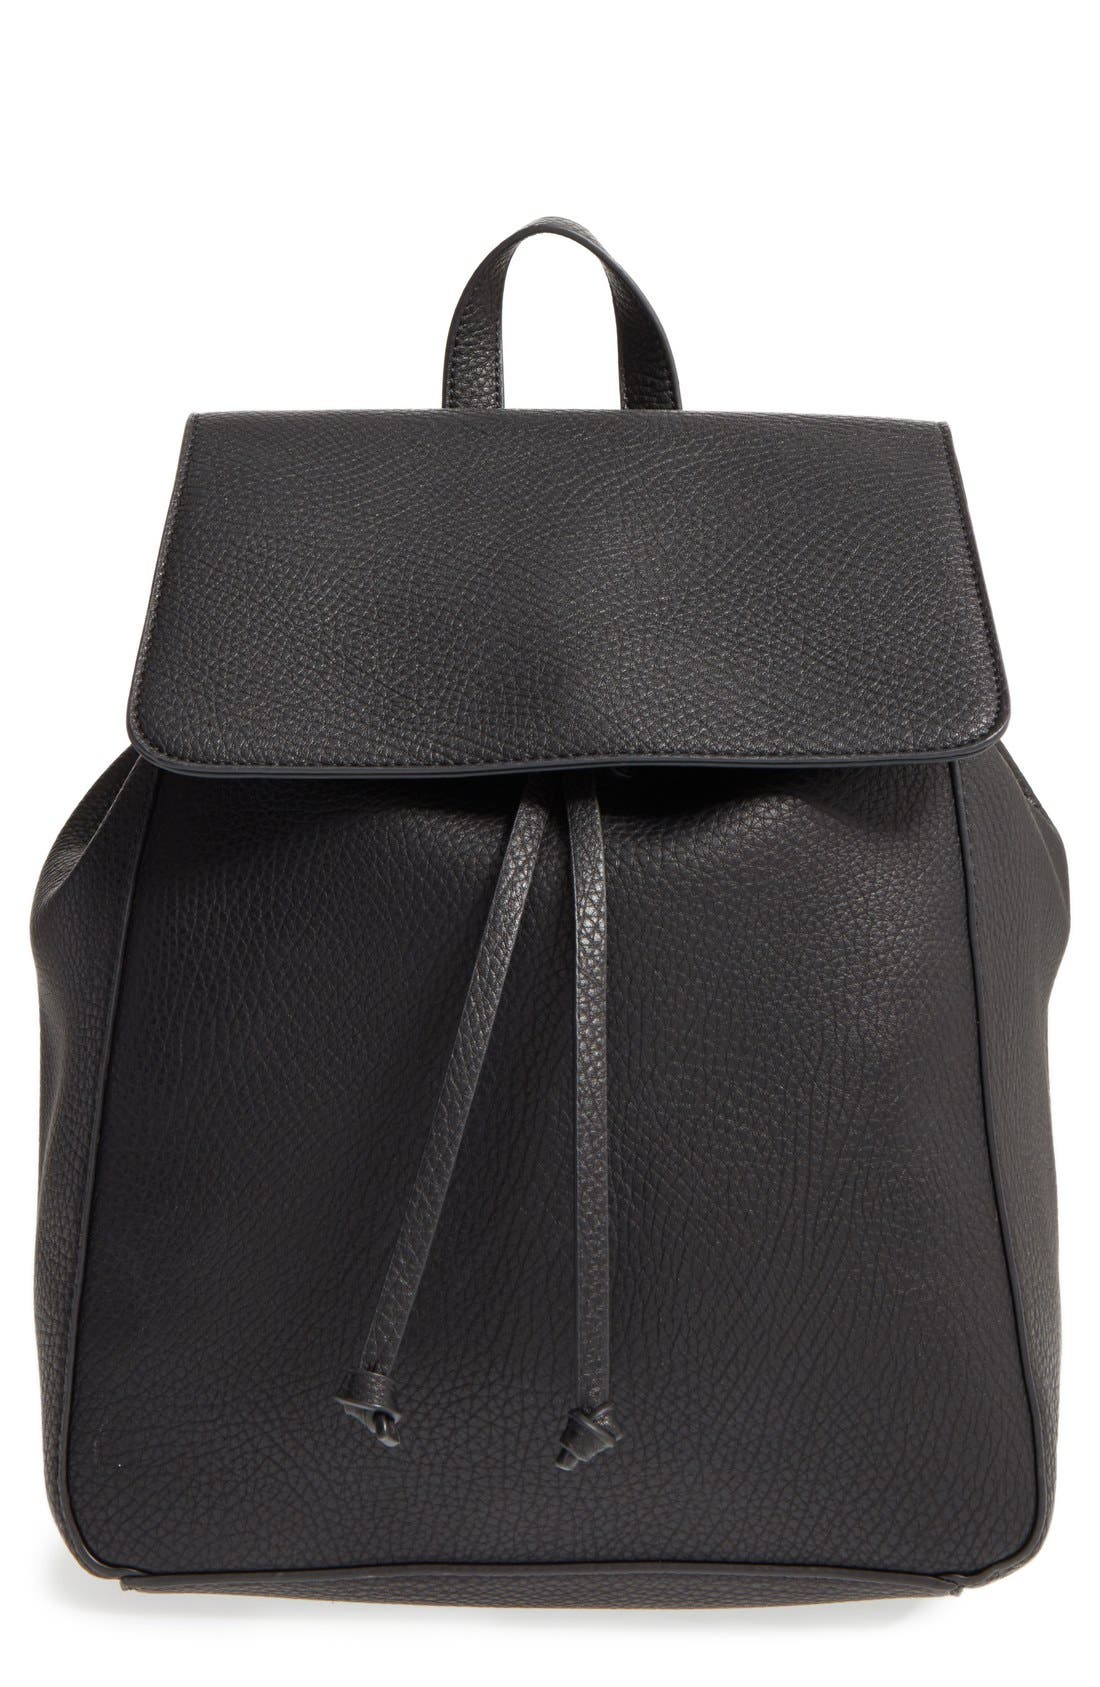 Alternate Image 1 Selected - Sole Society 'Iver' Faux Leather Drawstring Backpack